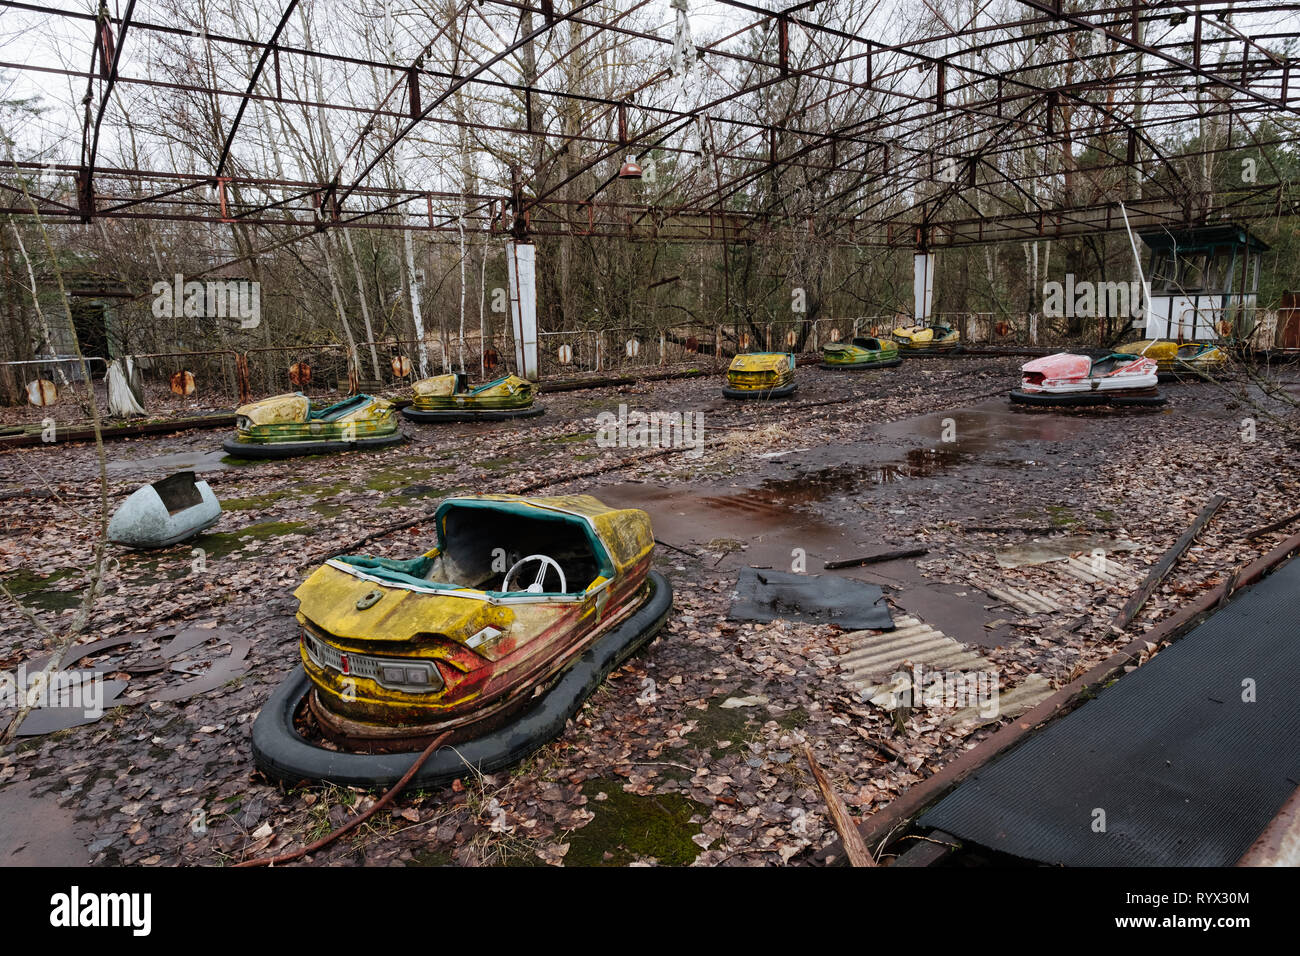 never opened amusement park in the abandoned city of Pripyat, Chernobyl nuclear power plant disaster exclusion zone, Ukraine. - Stock Image